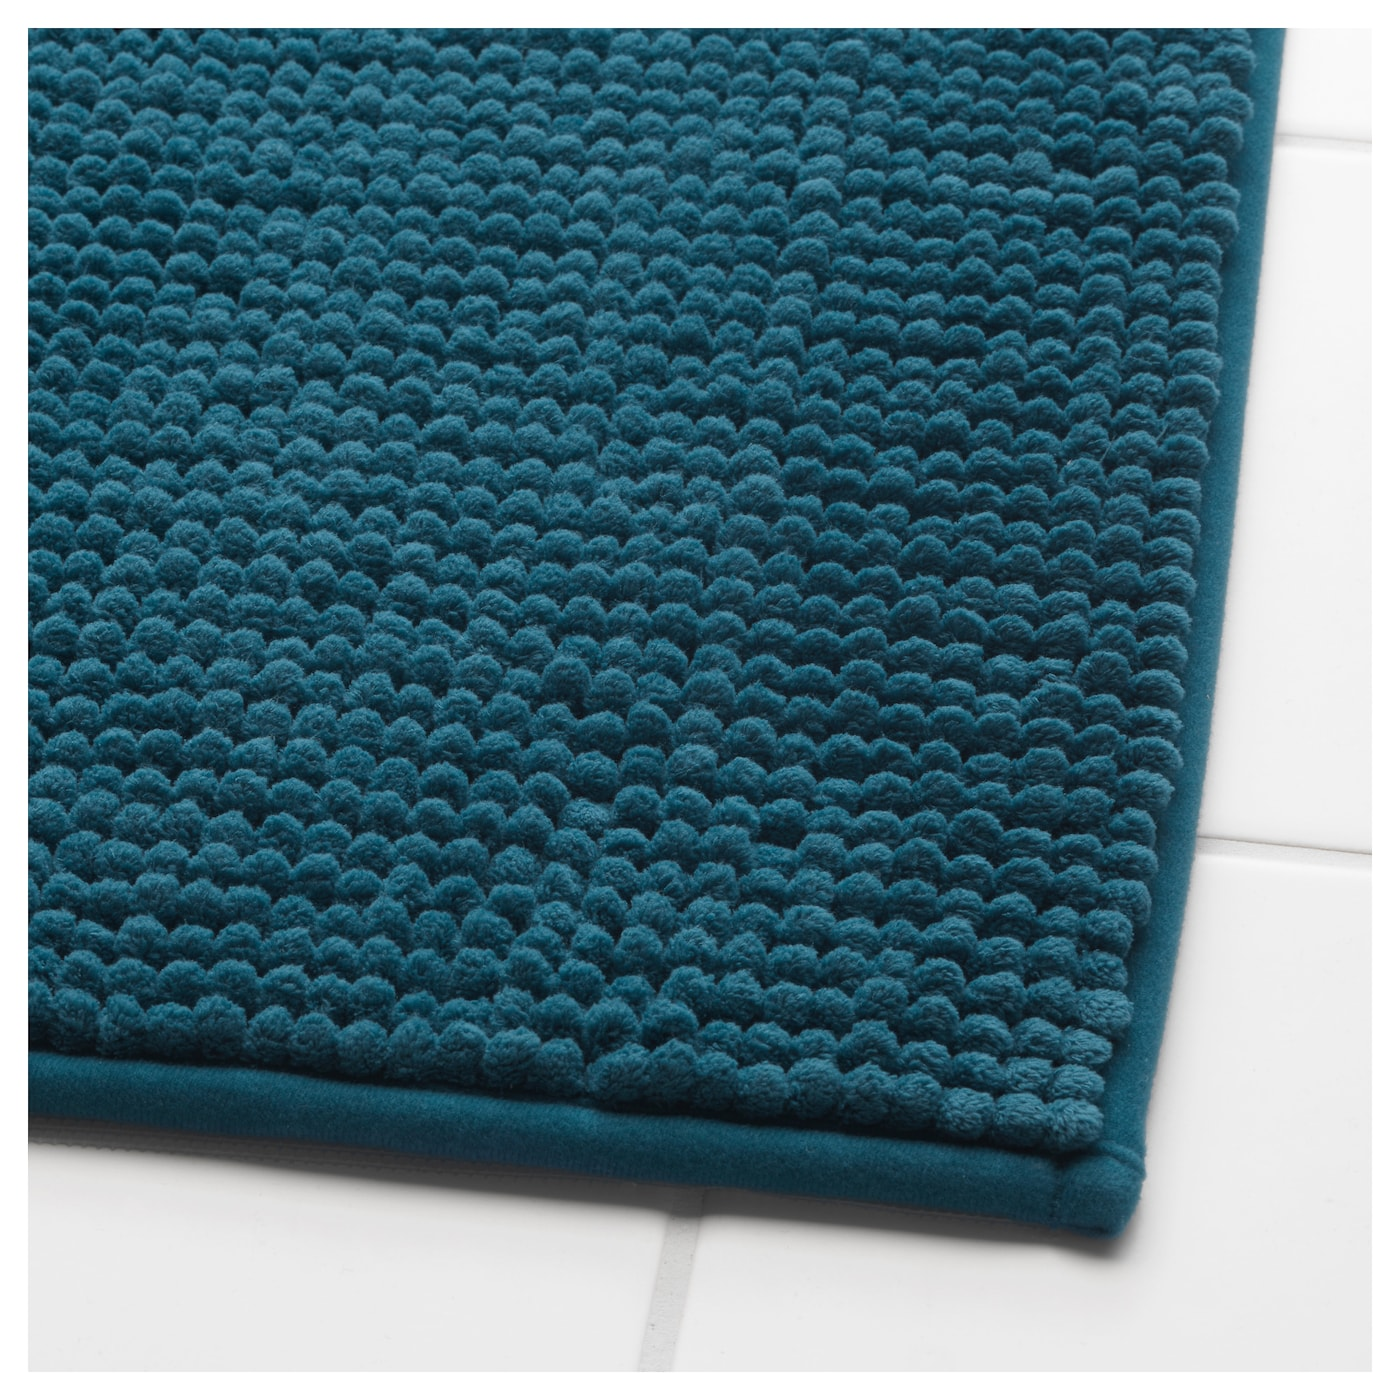 Can Bathroom Rugs Go In The Dryer: TOFTBO Bath Mat Green-blue 60 X 90 Cm